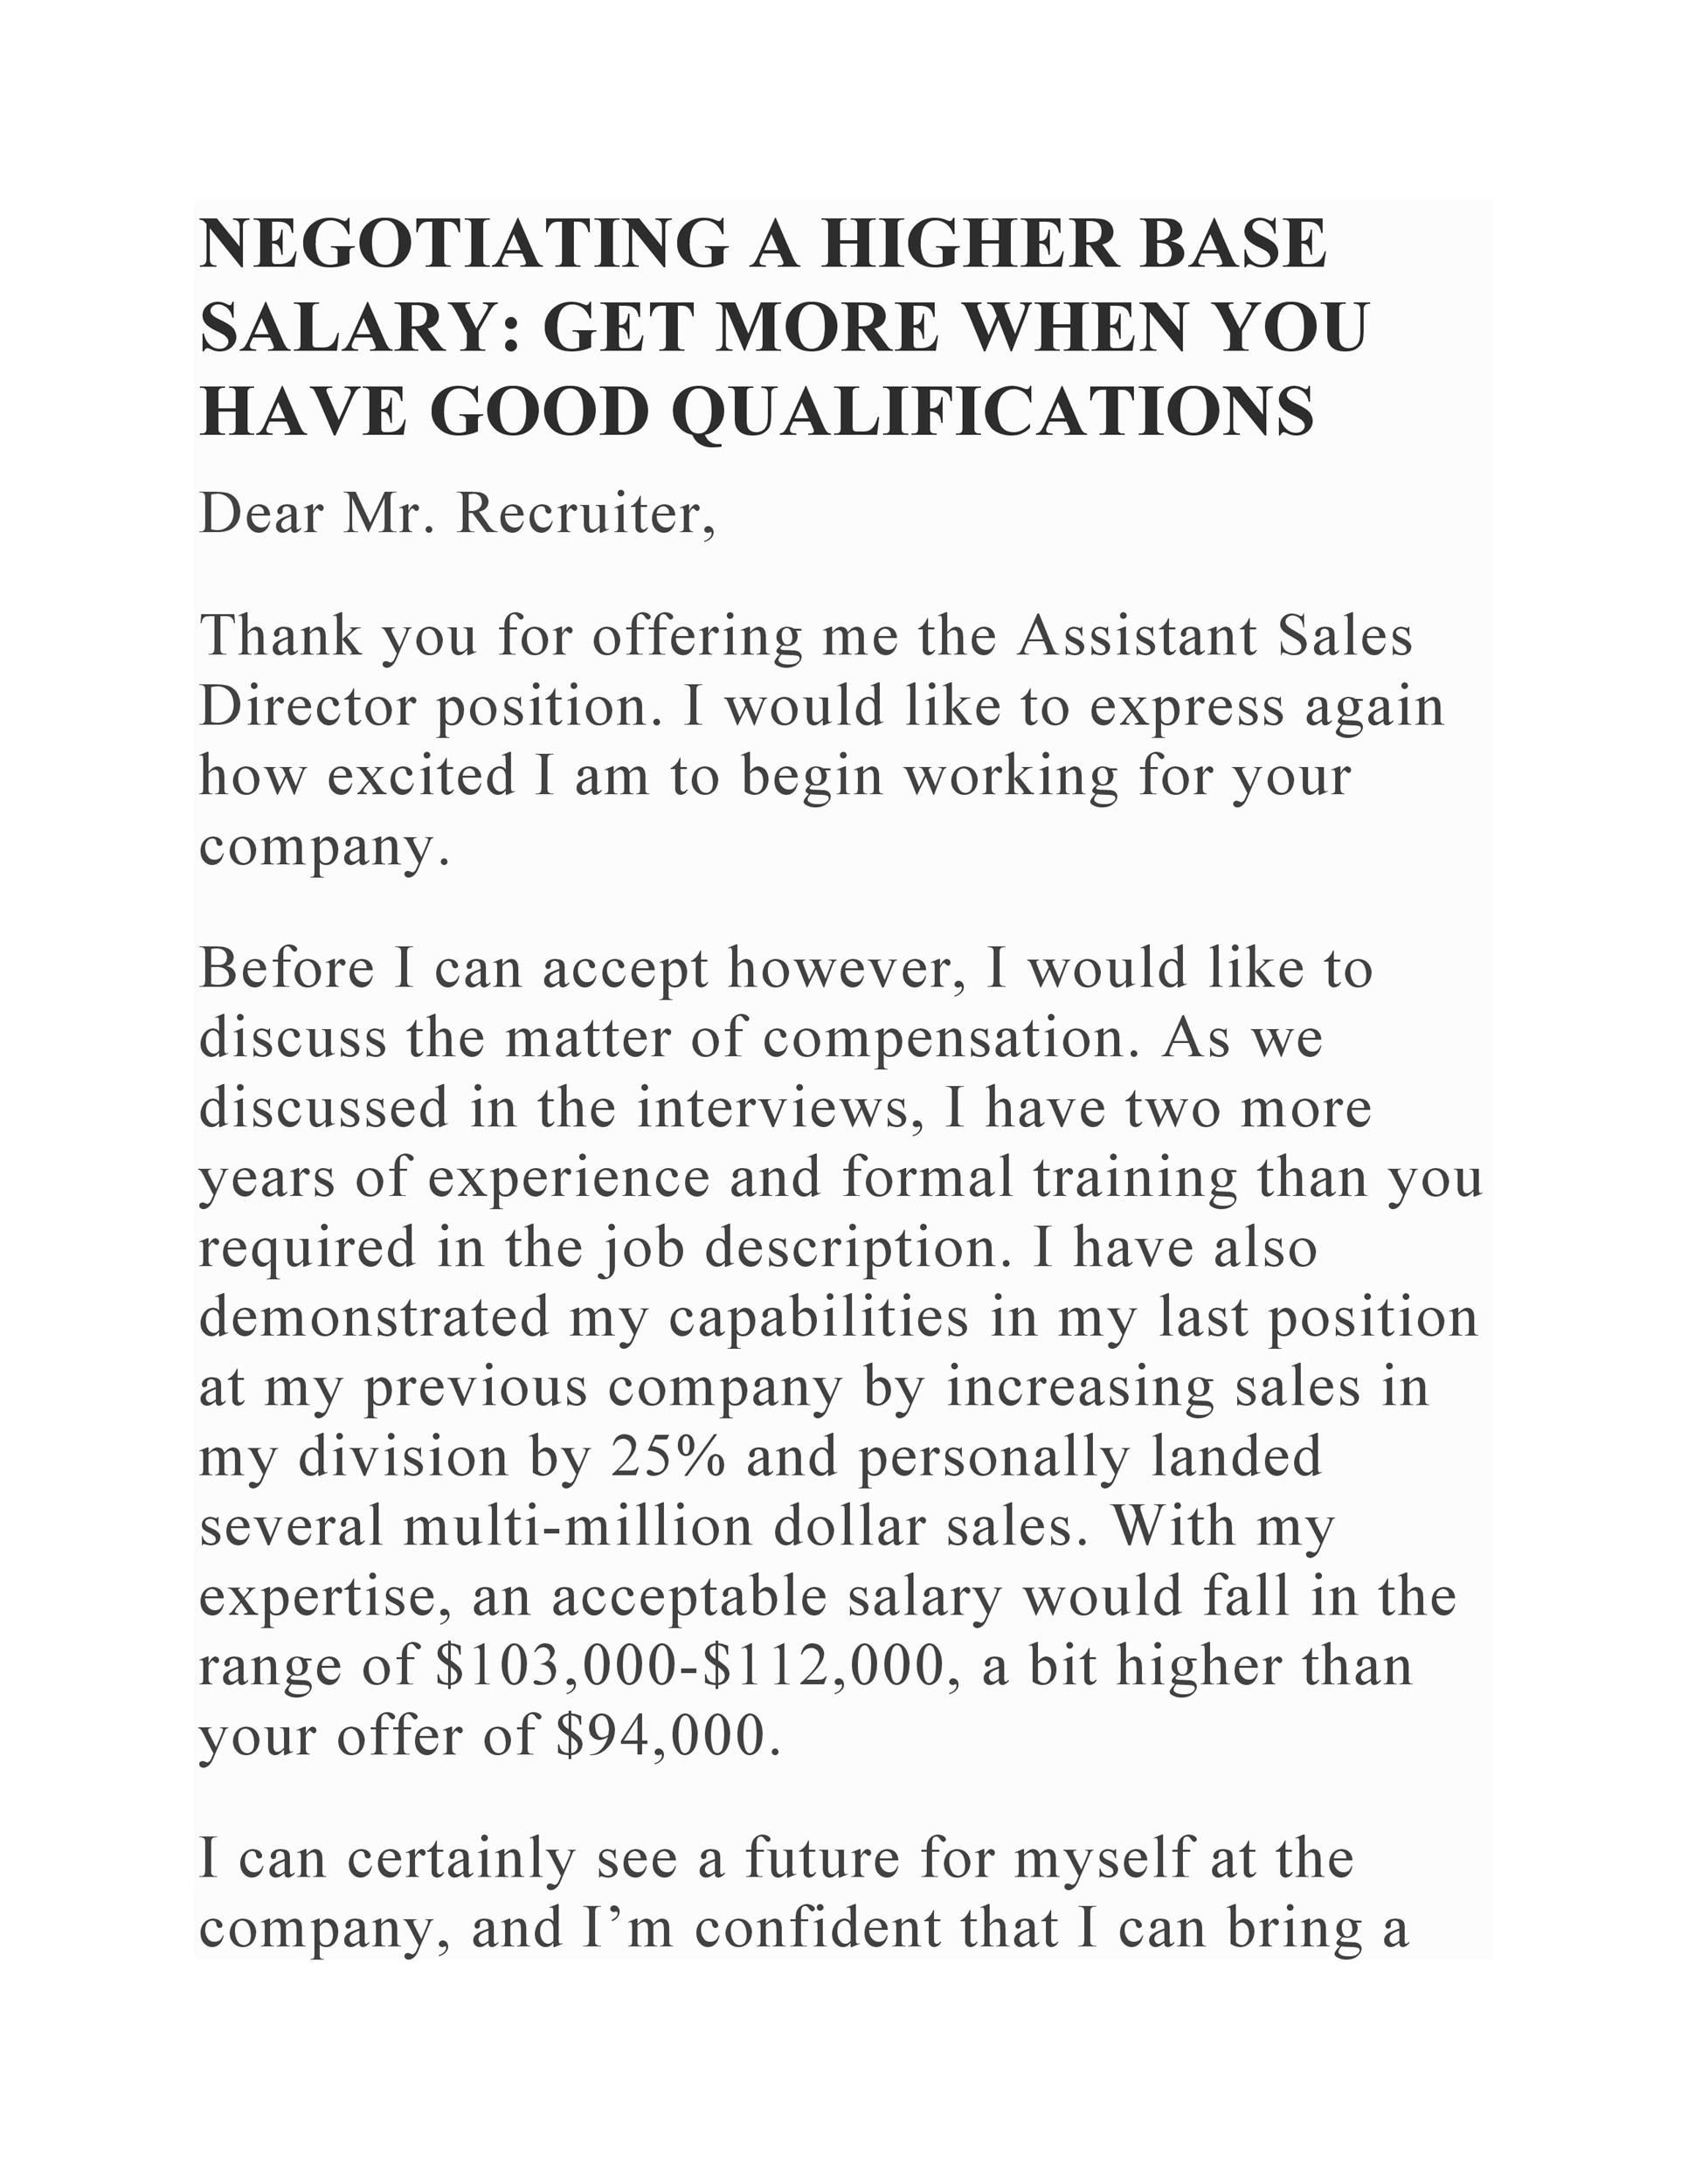 Free salary negotiation letter 11